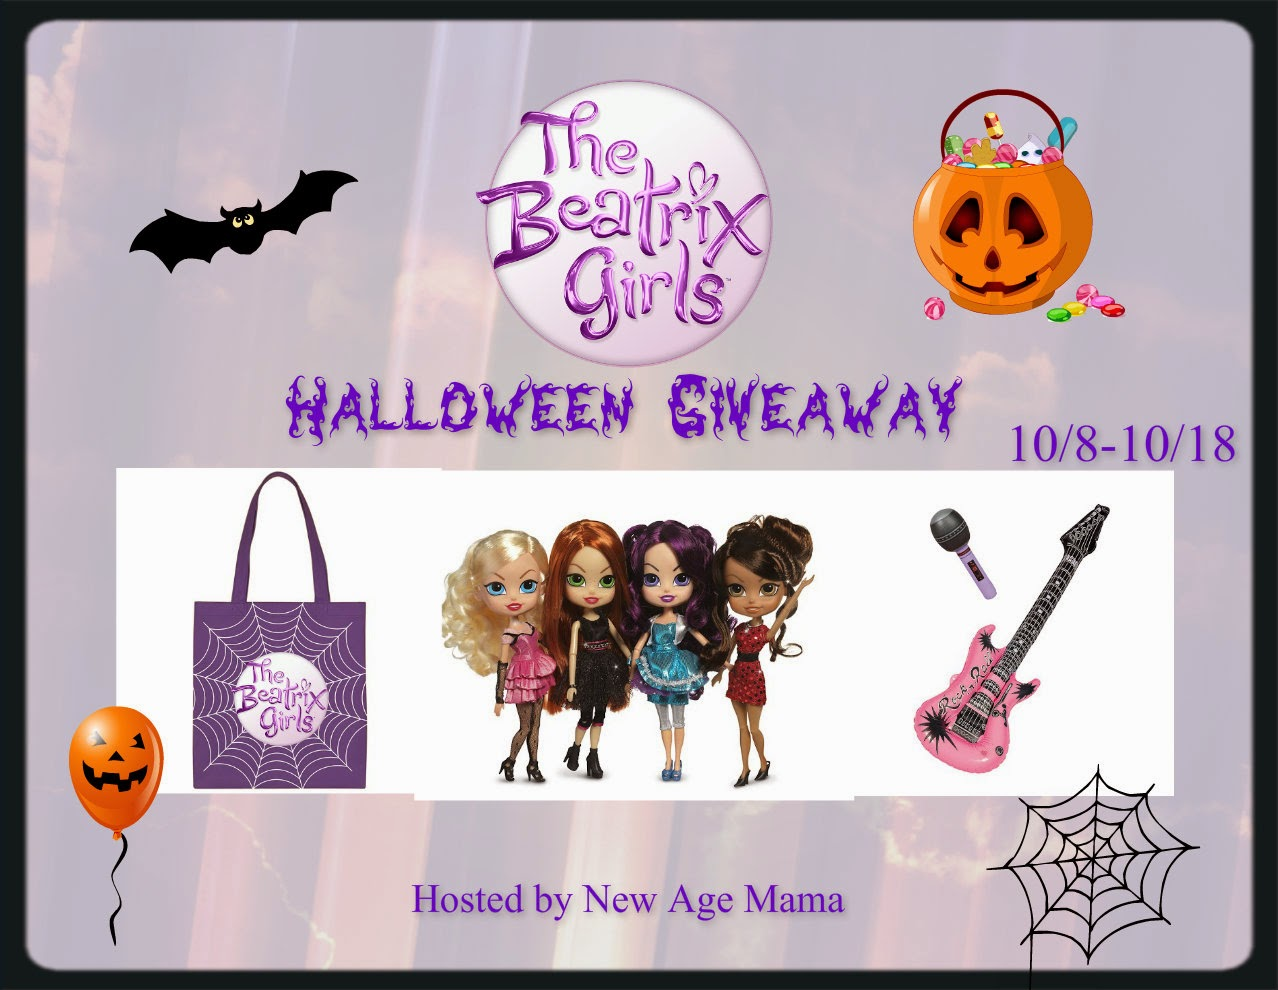 Enter to win the Beatrix Girls Halloween Giveaway. Ends 10/17.